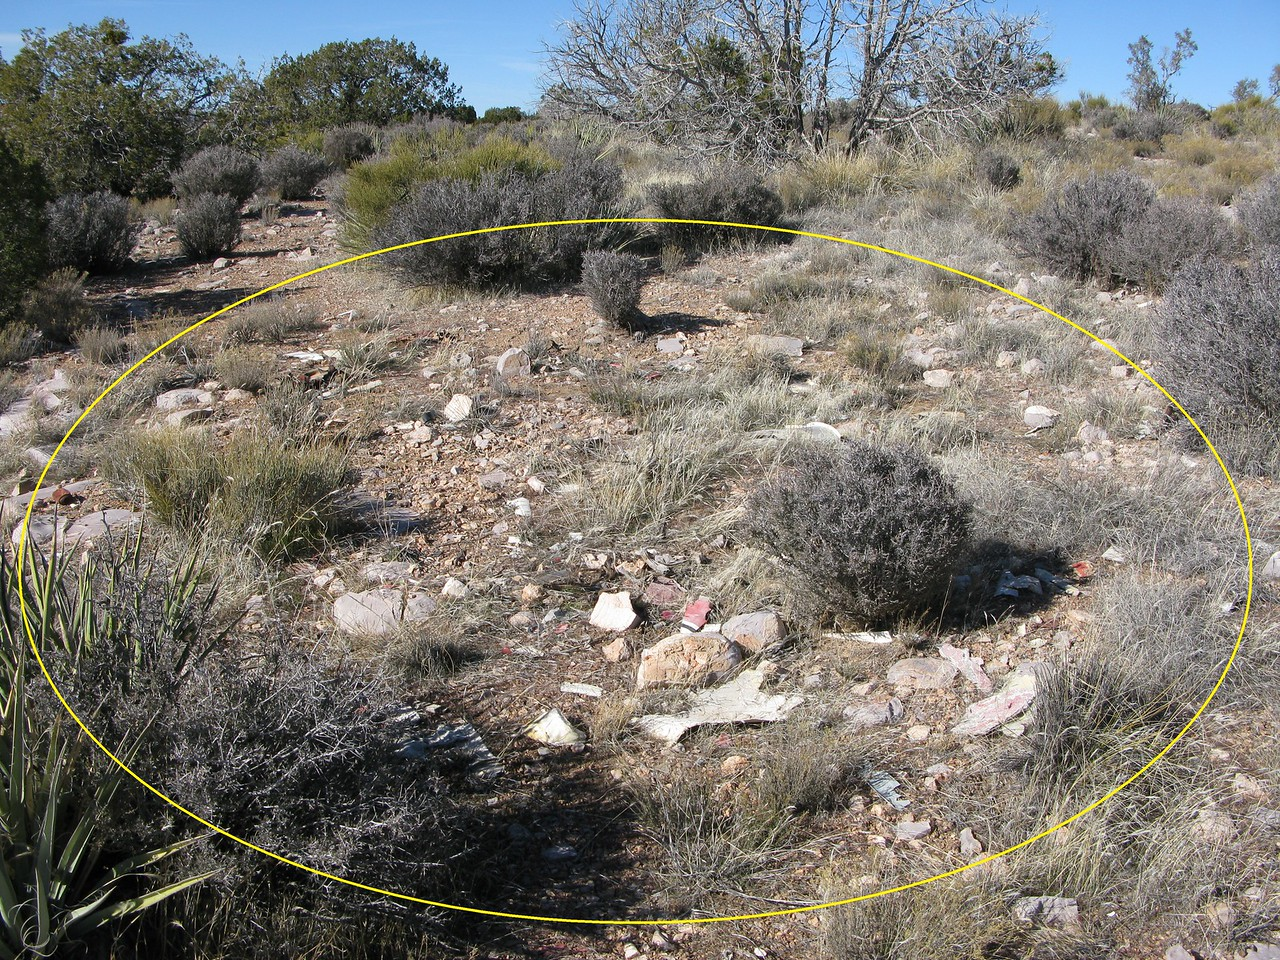 THE ACCIDENT SITE - JANUARY 2012<br /> <br /> The main impact area encompasses a 6 meter diameter circle of concentrated debris with wreckage fragments radiating out at 15 meters. There was no evidence of a post impact fire.